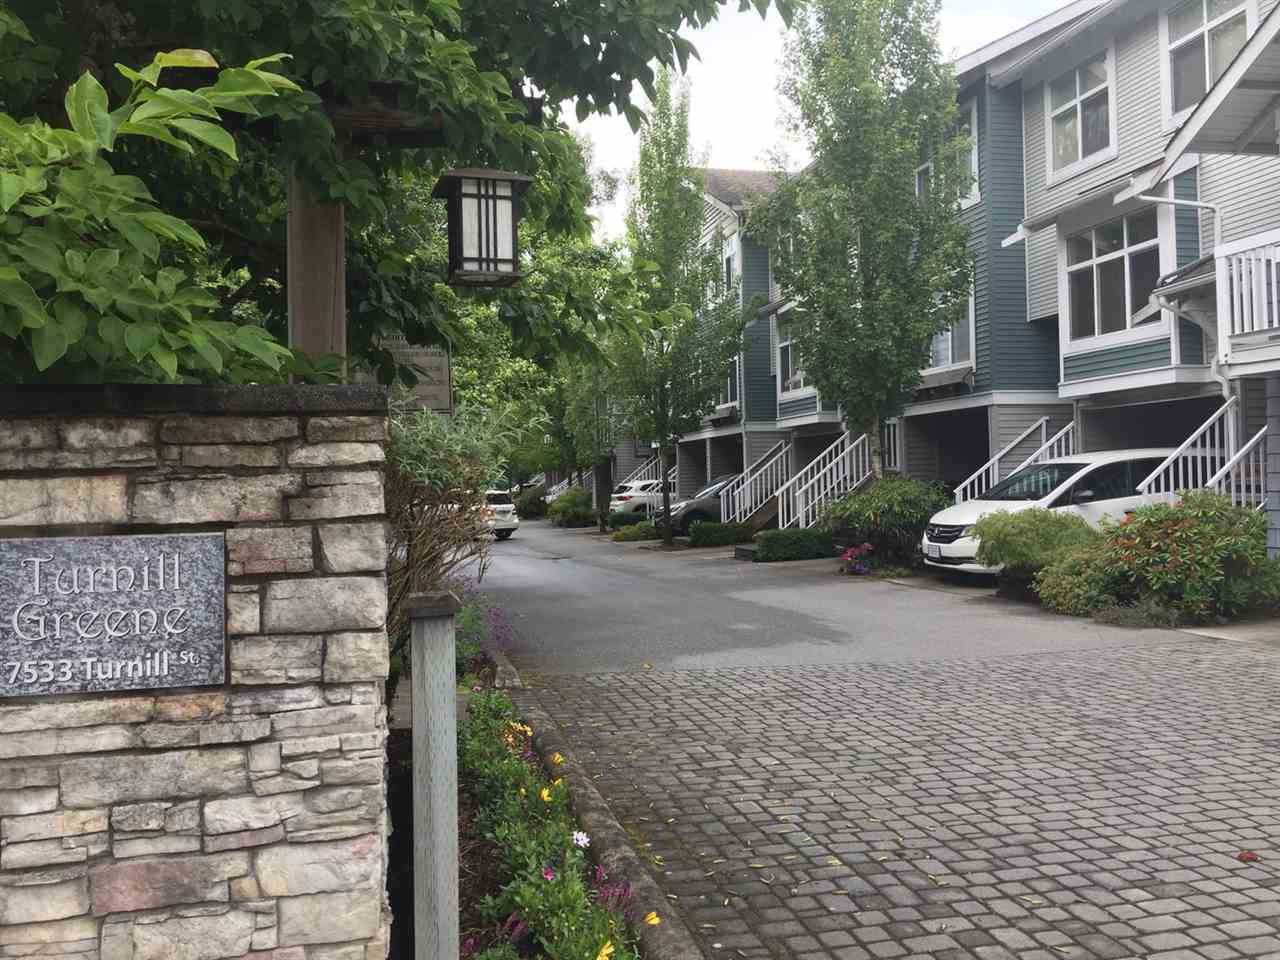 13 7533 TURNILL STREET - McLennan North Townhouse for sale, 4 Bedrooms (R2388216) - #20